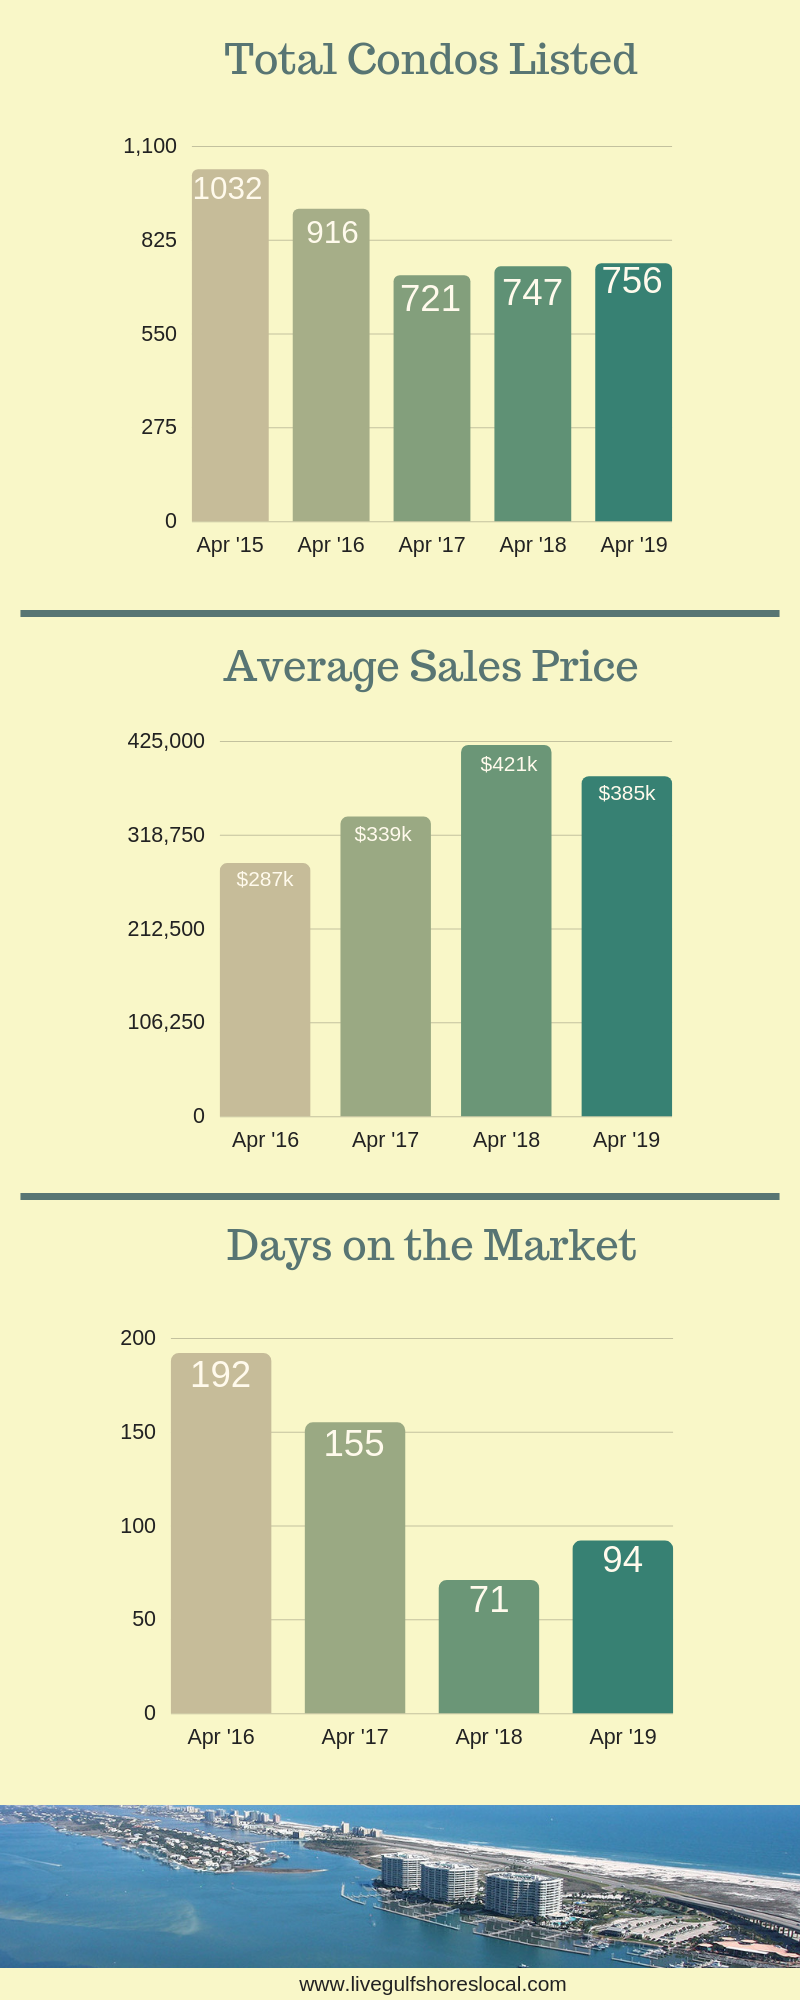 Alabama Condo Report for Baldwin County - April 2019 pg 2